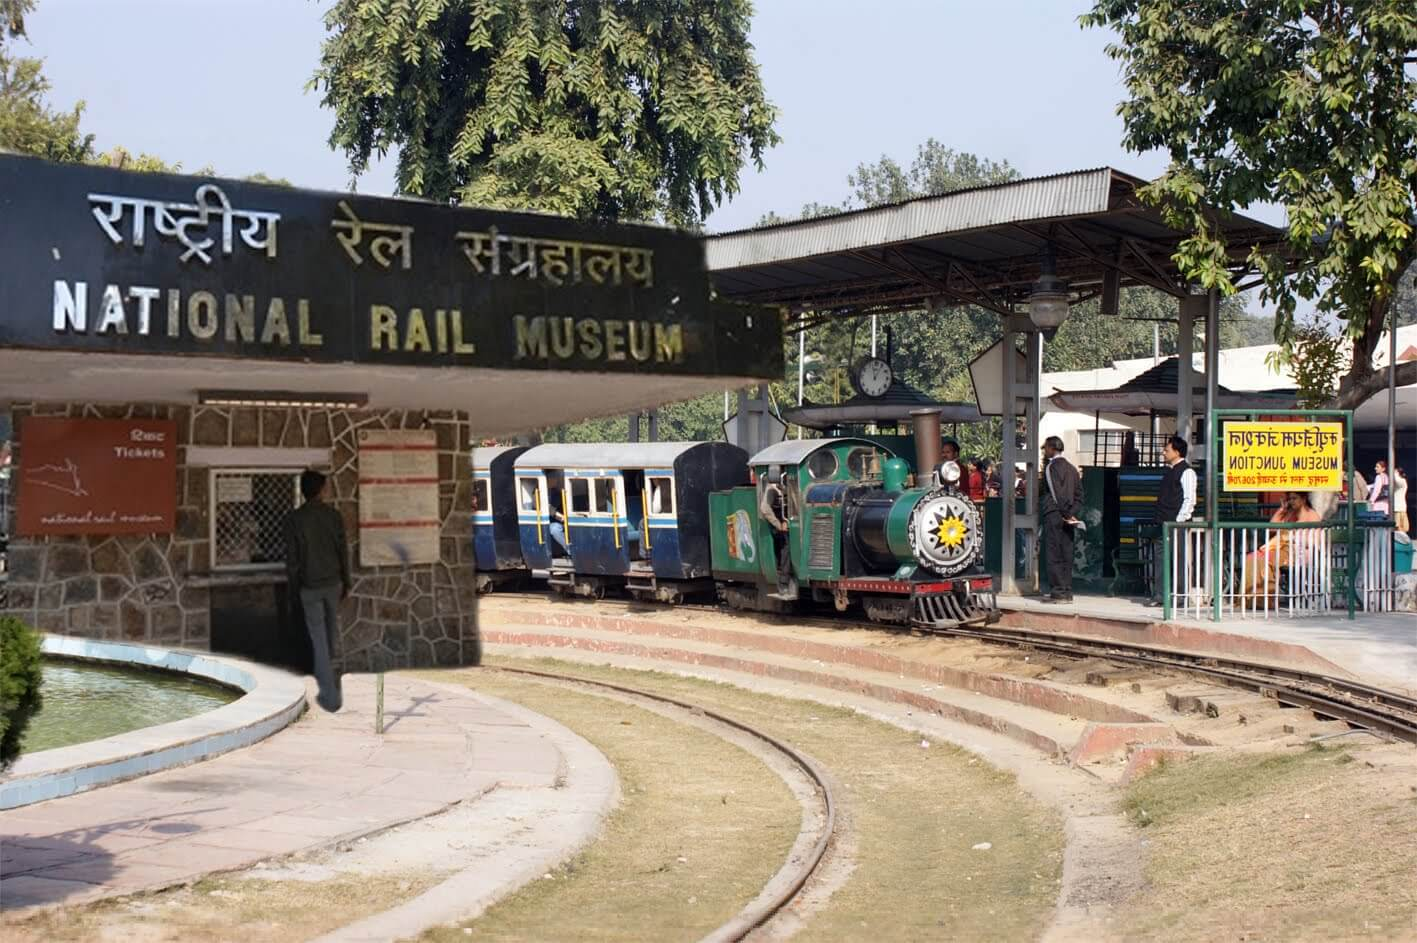 Top Rail Museum in India - History, Fact and Attractions